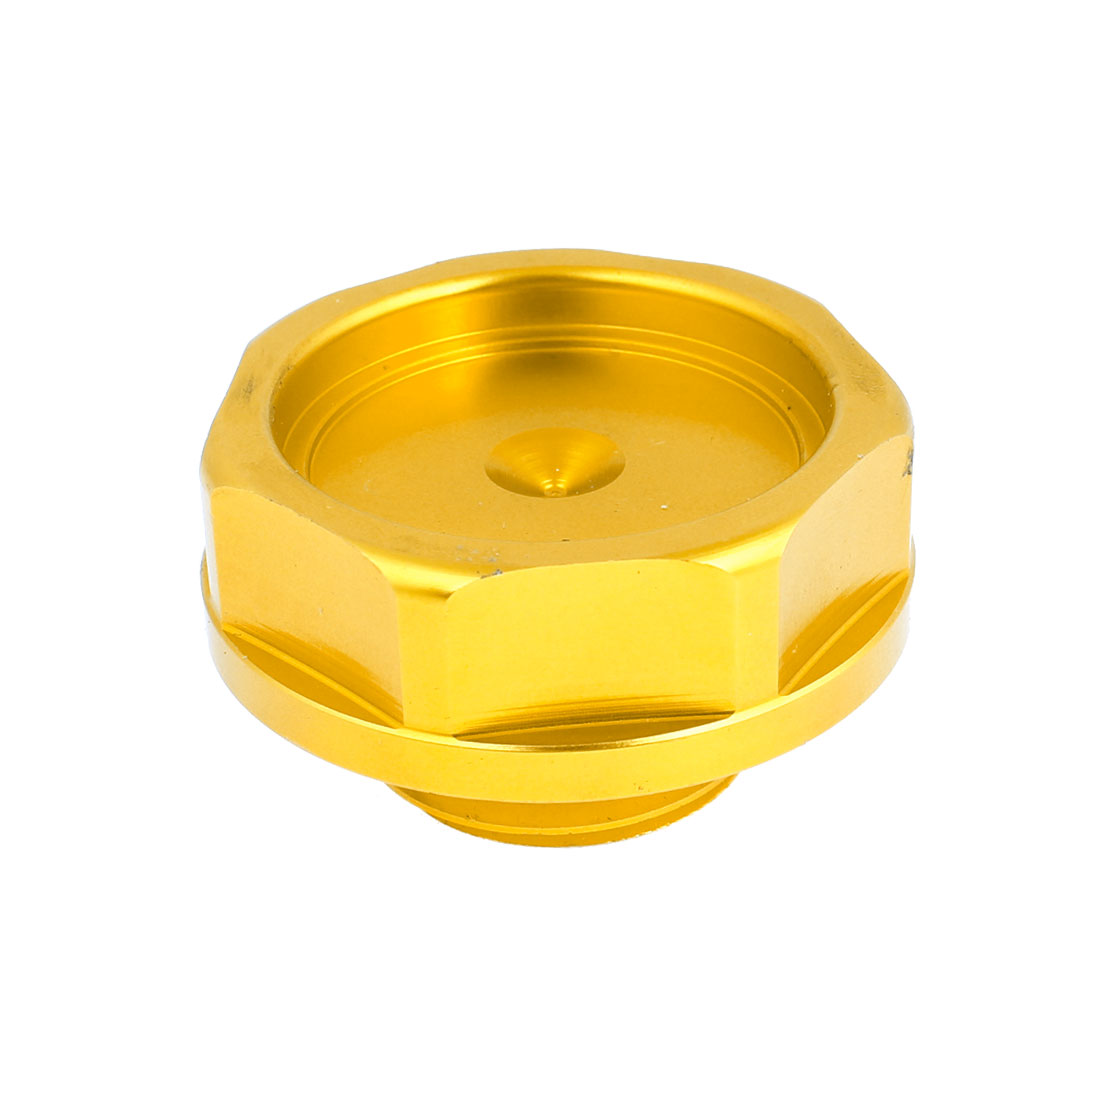 32mm Dia Gold Tone Metal Engine Oil Filler Cover Cap for Car Auto